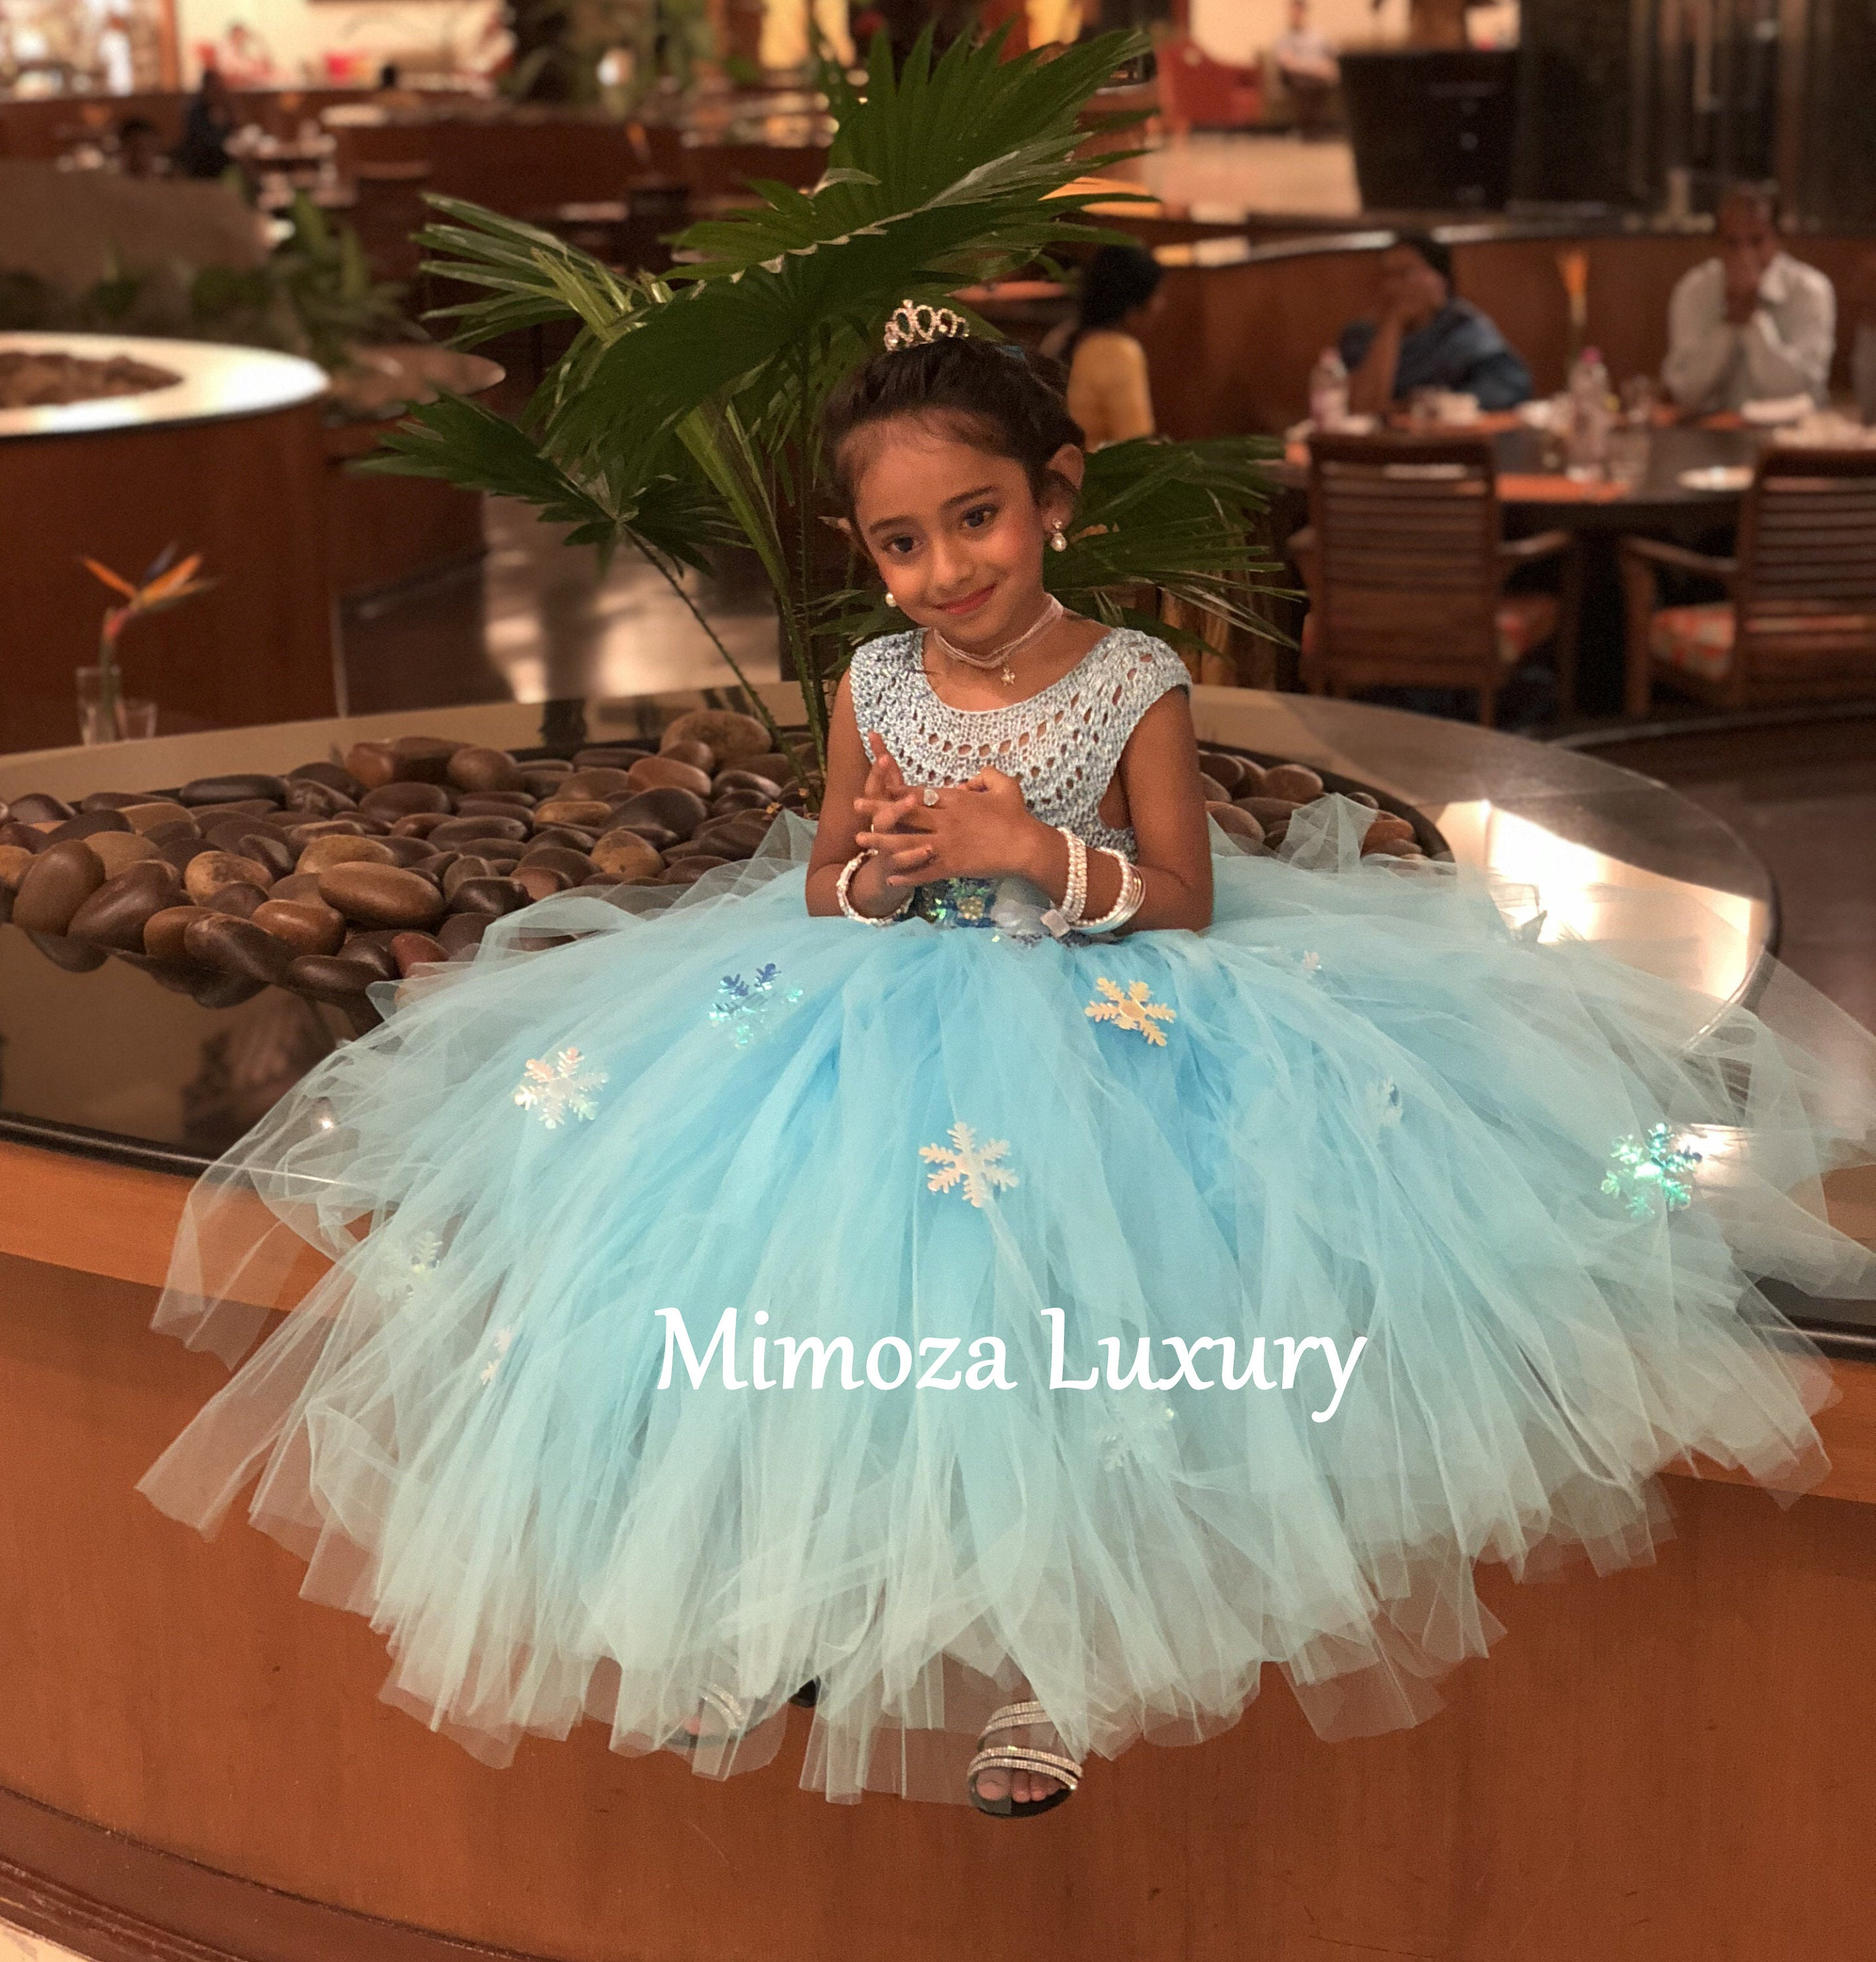 Awesome Elsa Deluxe Princess Dress, Turquoise Tutu Dress, Frozen Themed Birthday  Party, Elsa Frozen Princess Dress Frozen Costume Outfit Elsa Disney